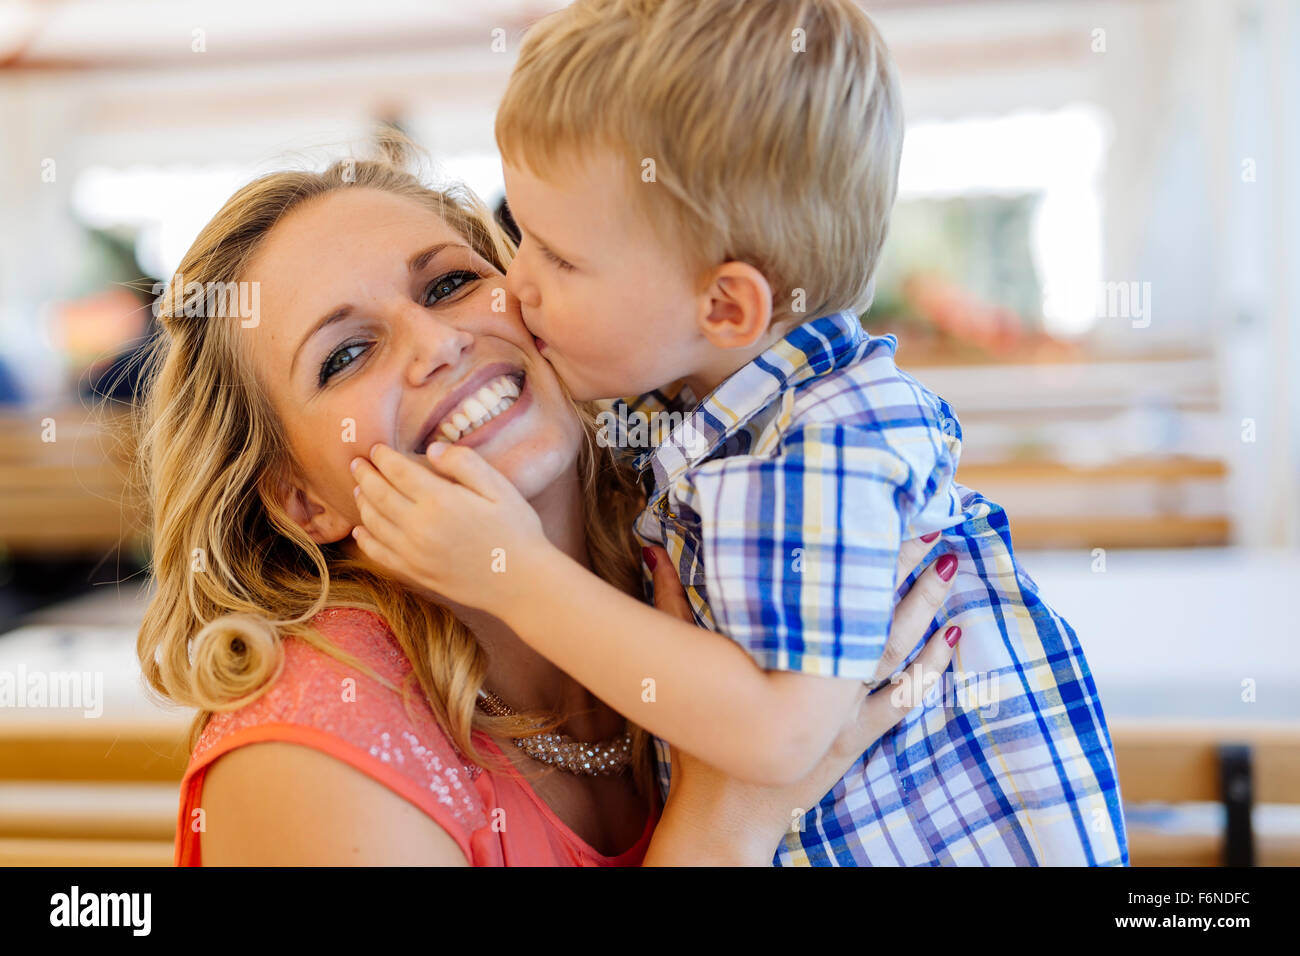 Beautiful mother and child being close to each other and being happy together - Stock Image